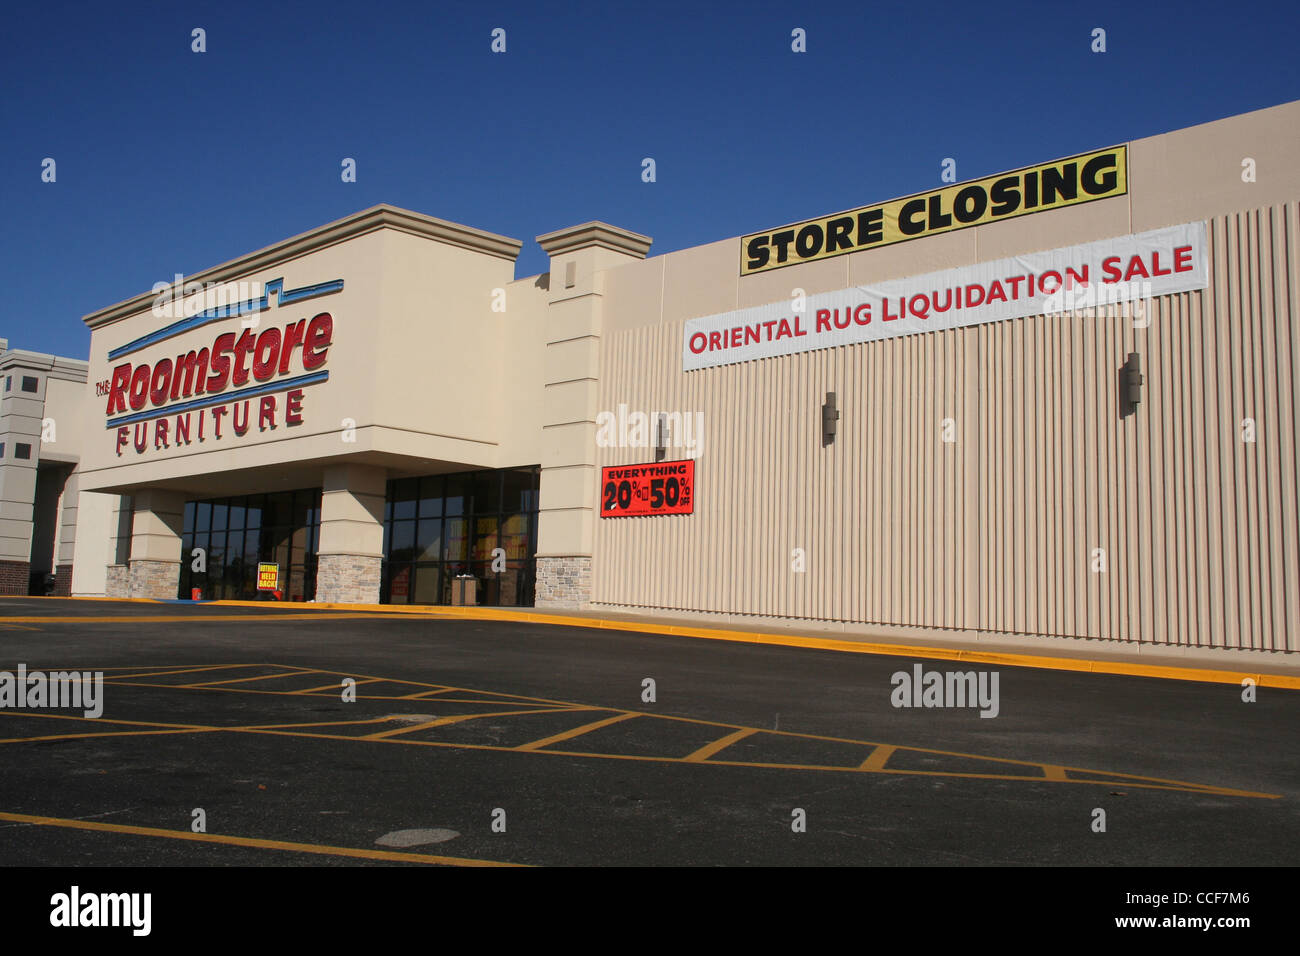 Awesome Stock Photo   The Roomstore Furniture Store Closing Sale   Tyler, TX    January 2012